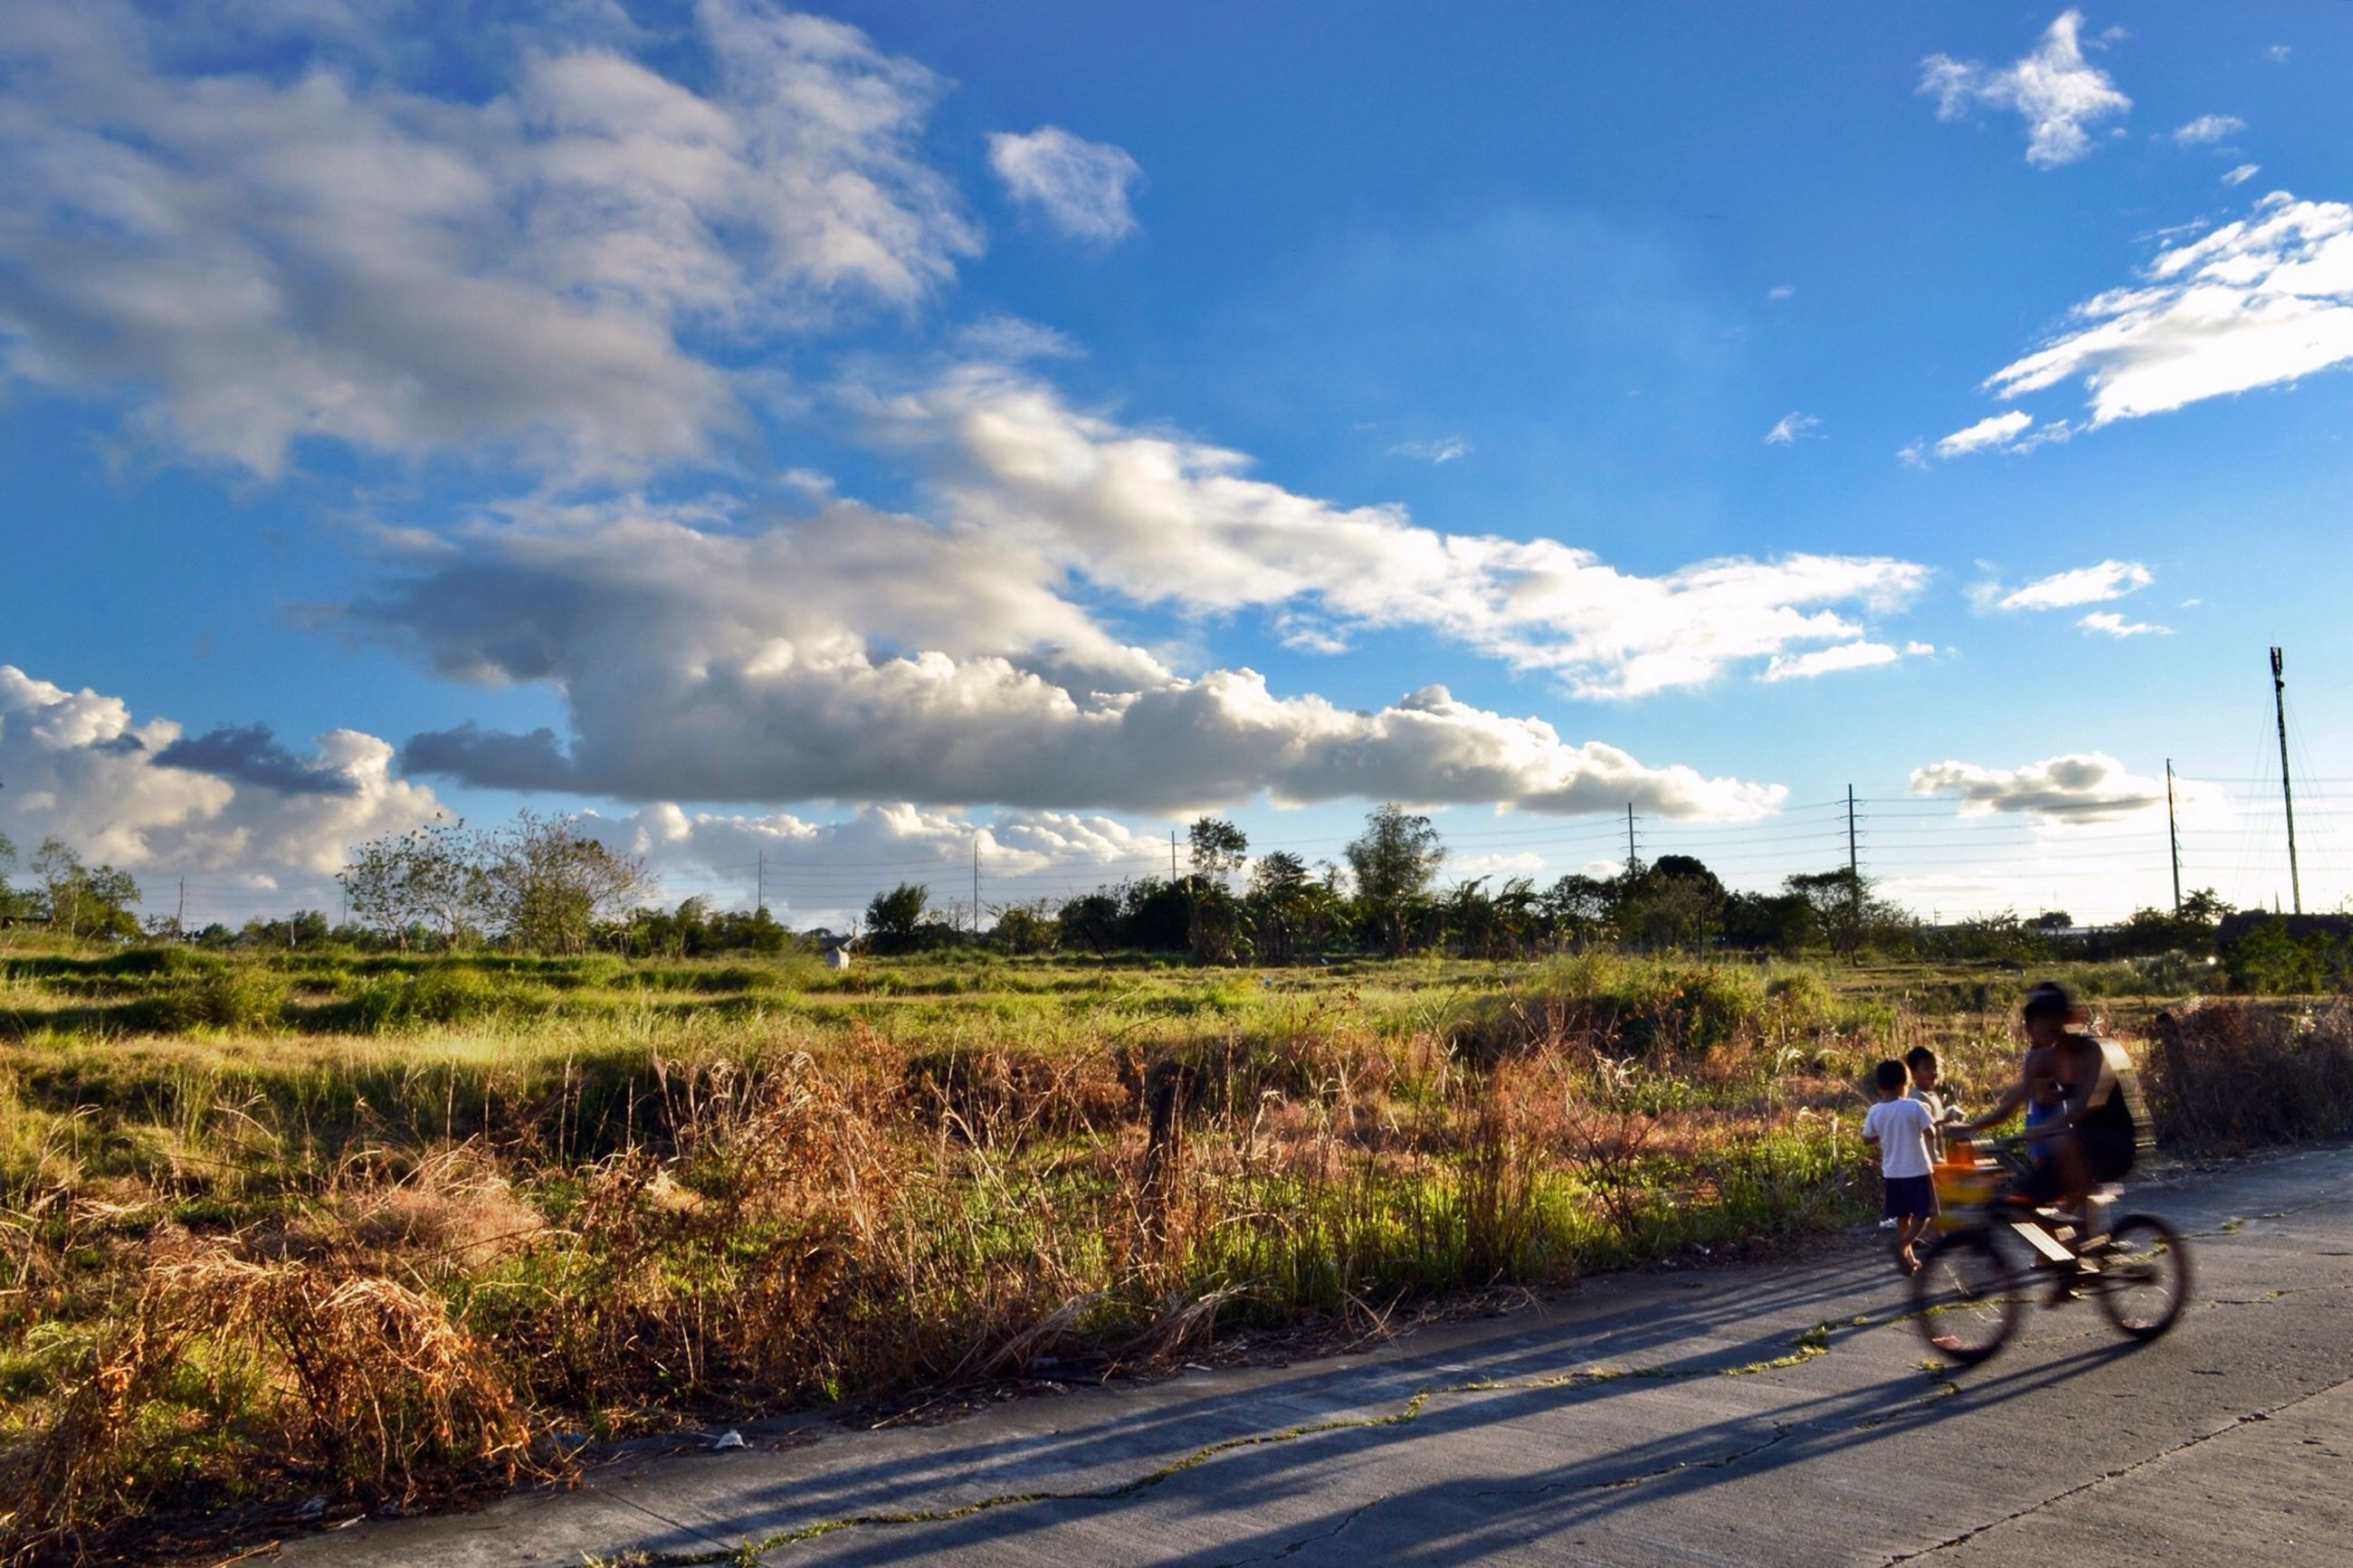 bicycle, transportation, land vehicle, mode of transport, riding, men, sky, lifestyles, leisure activity, cycling, full length, road, cloud - sky, motorcycle, travel, on the move, rear view